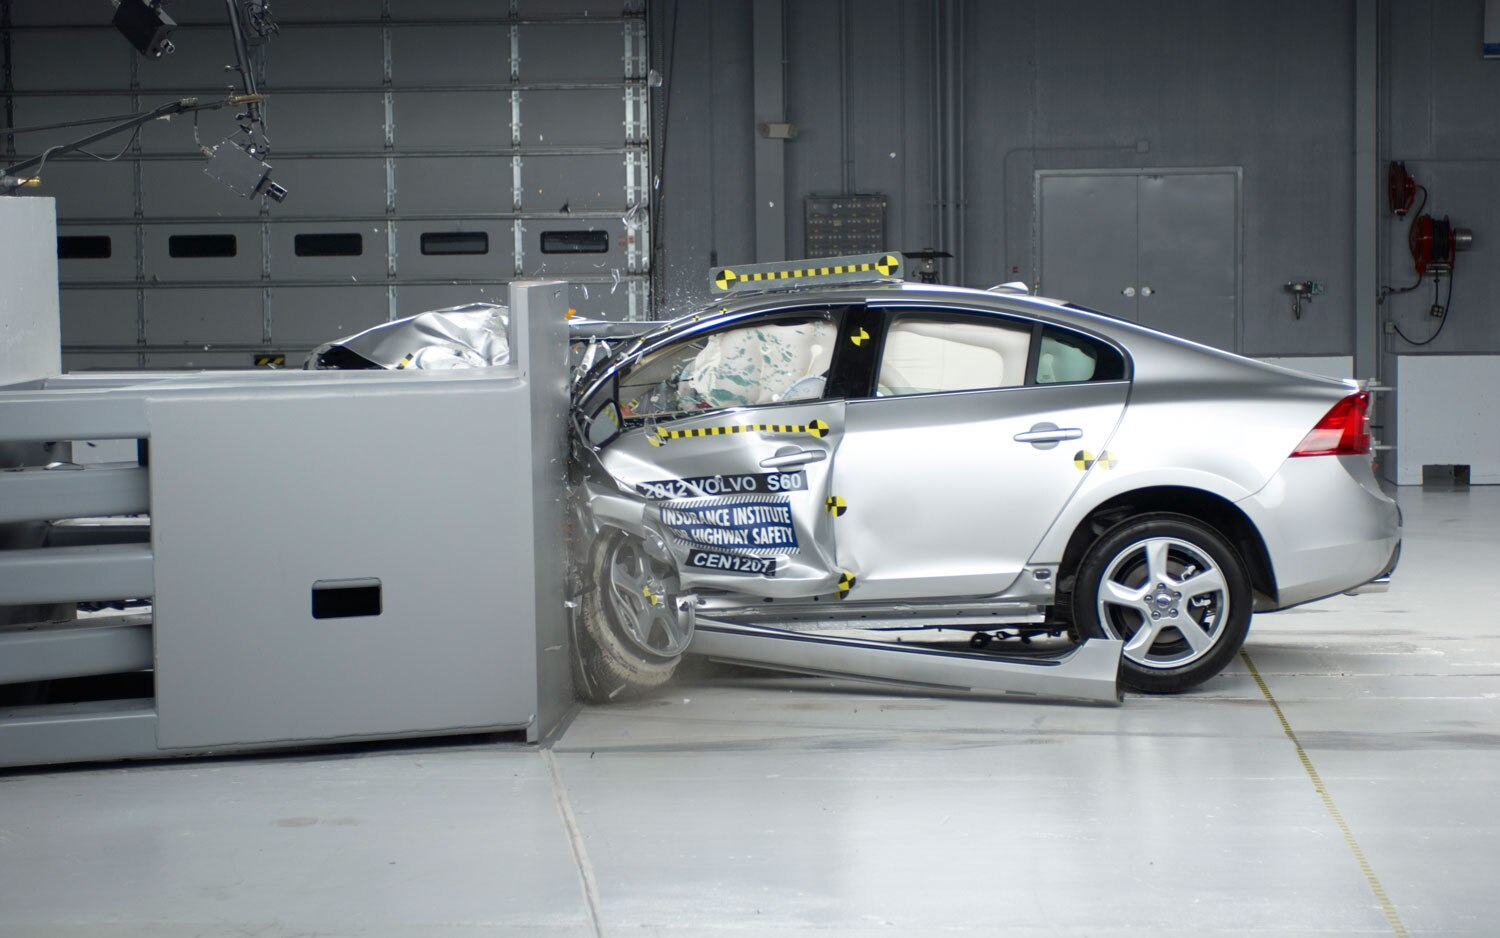 2012 Volvo S60 Small Overlap Crash Side View1